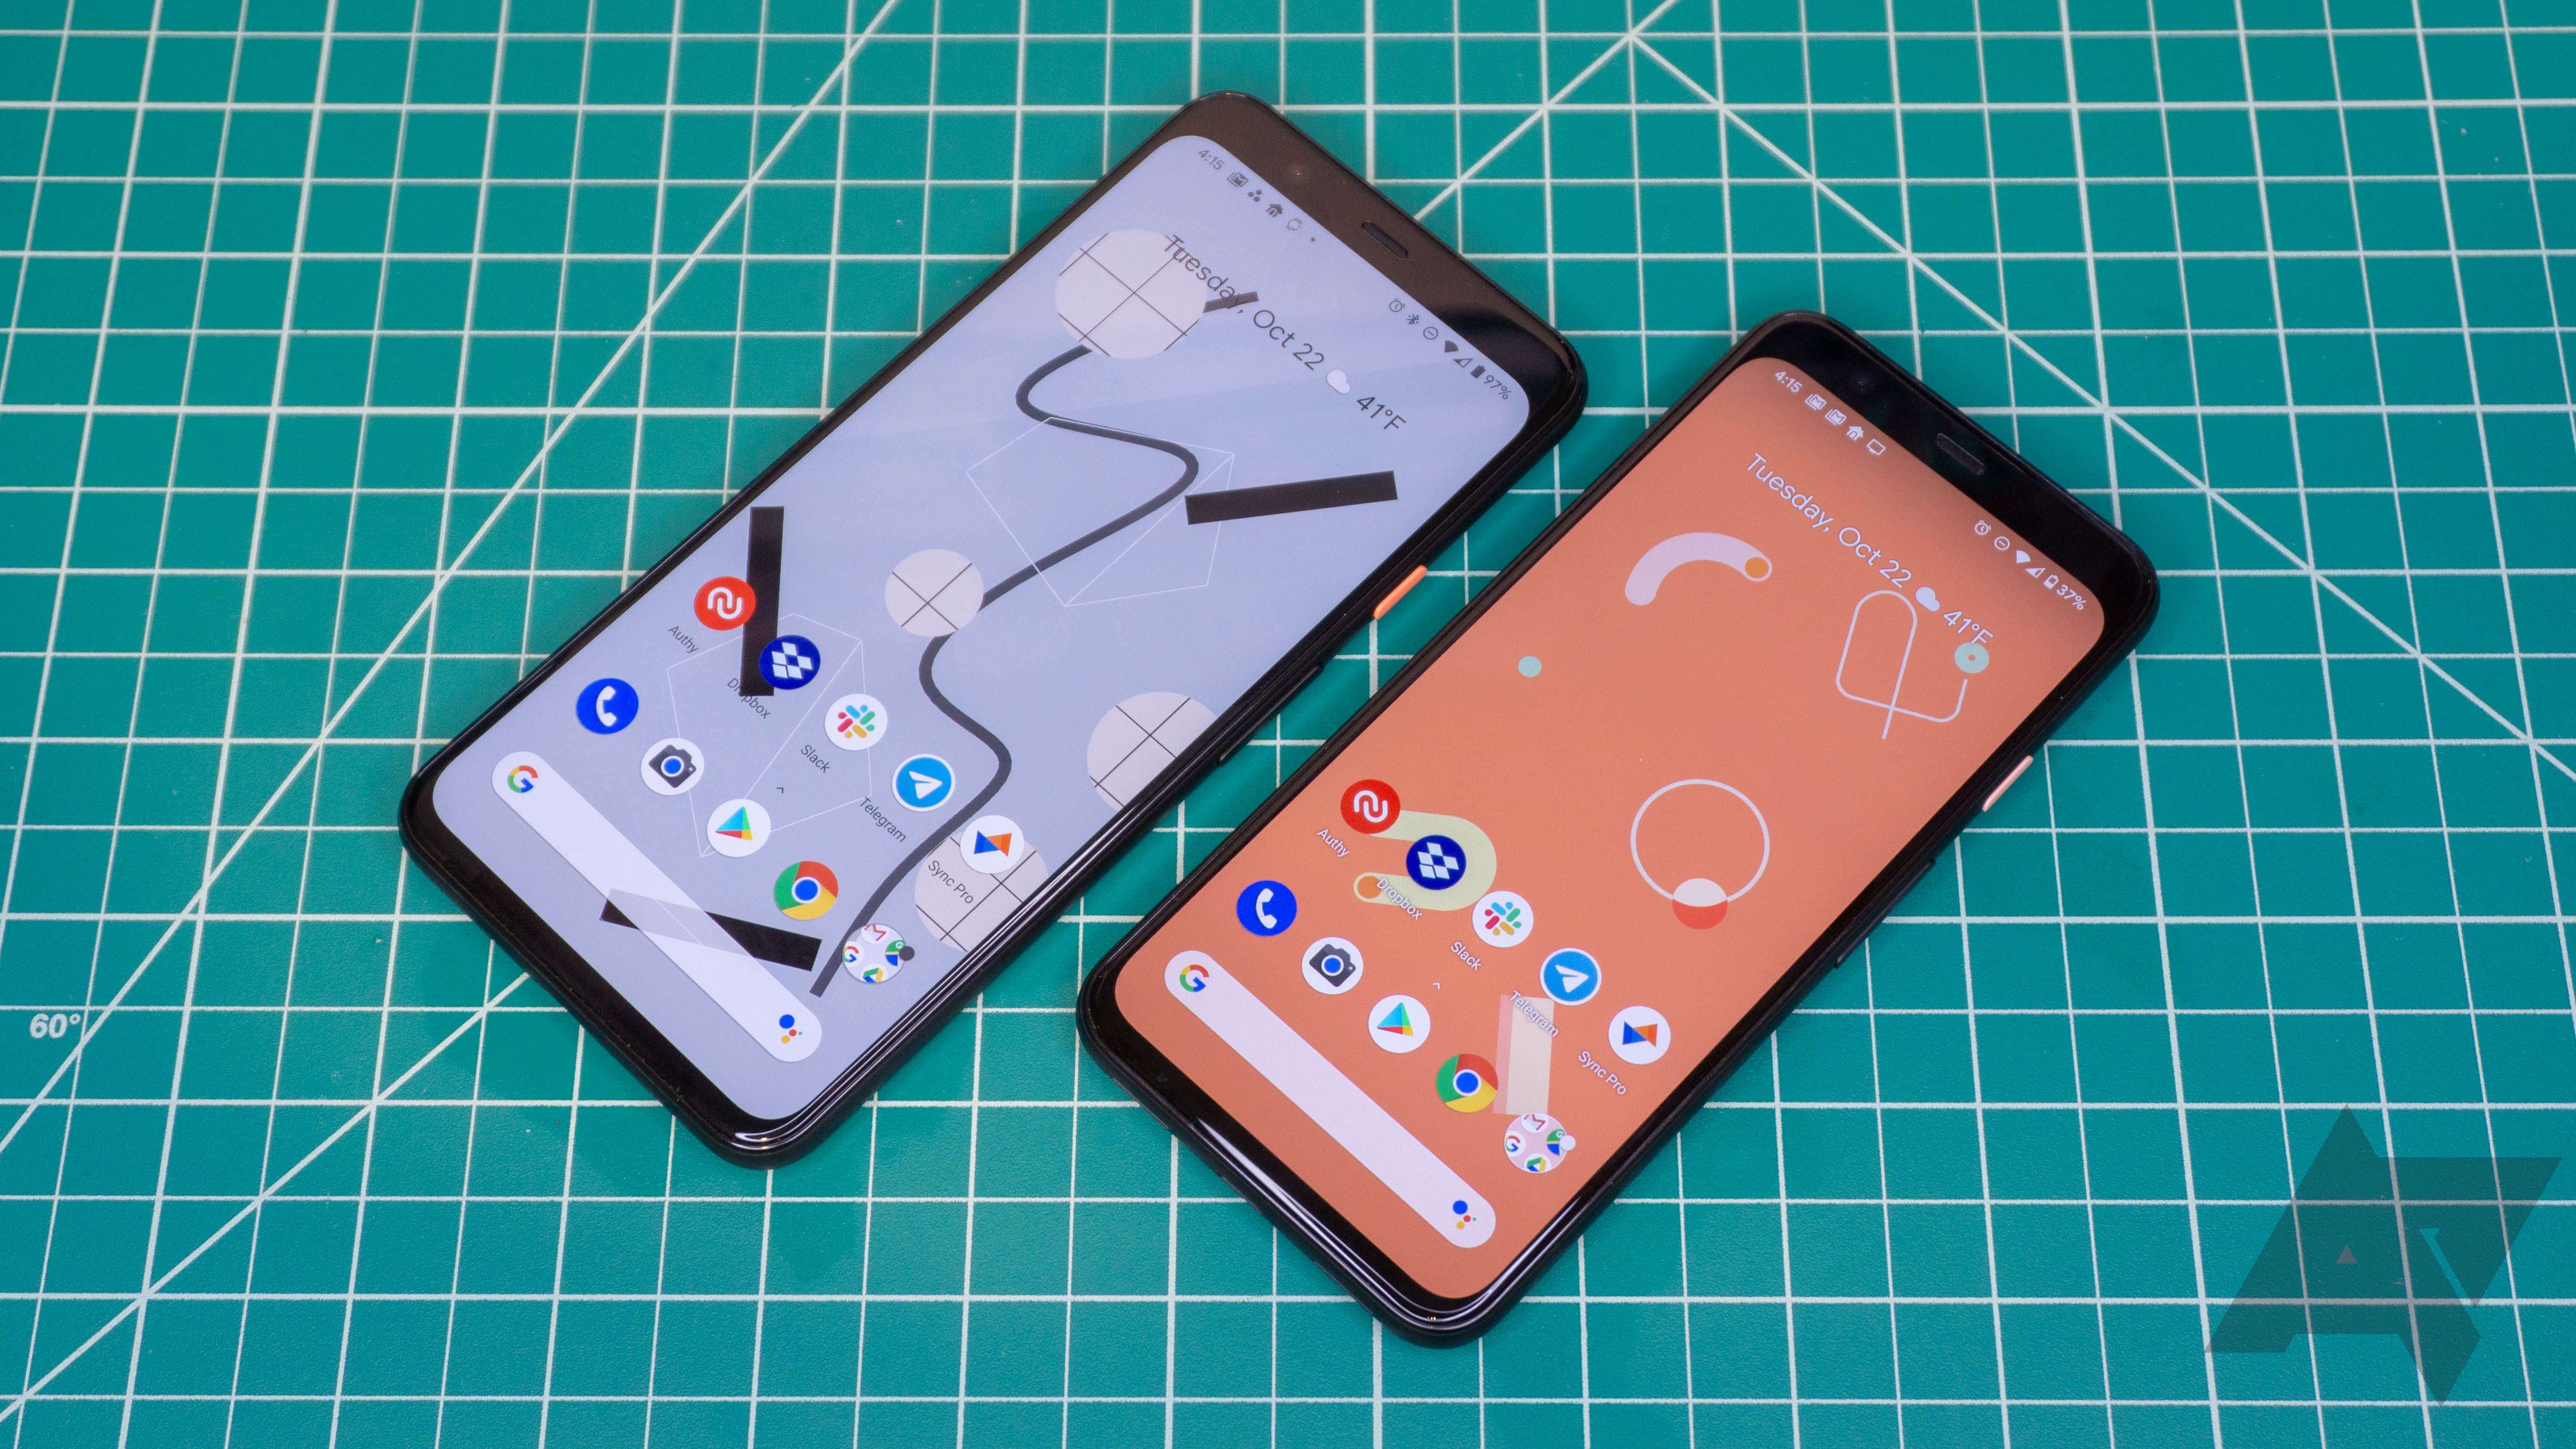 Pixel 4 and 4 XL are up to $150 off across retailers, Amazon throws in $100 Google Wifi for free (Update: Free Nest Hub)